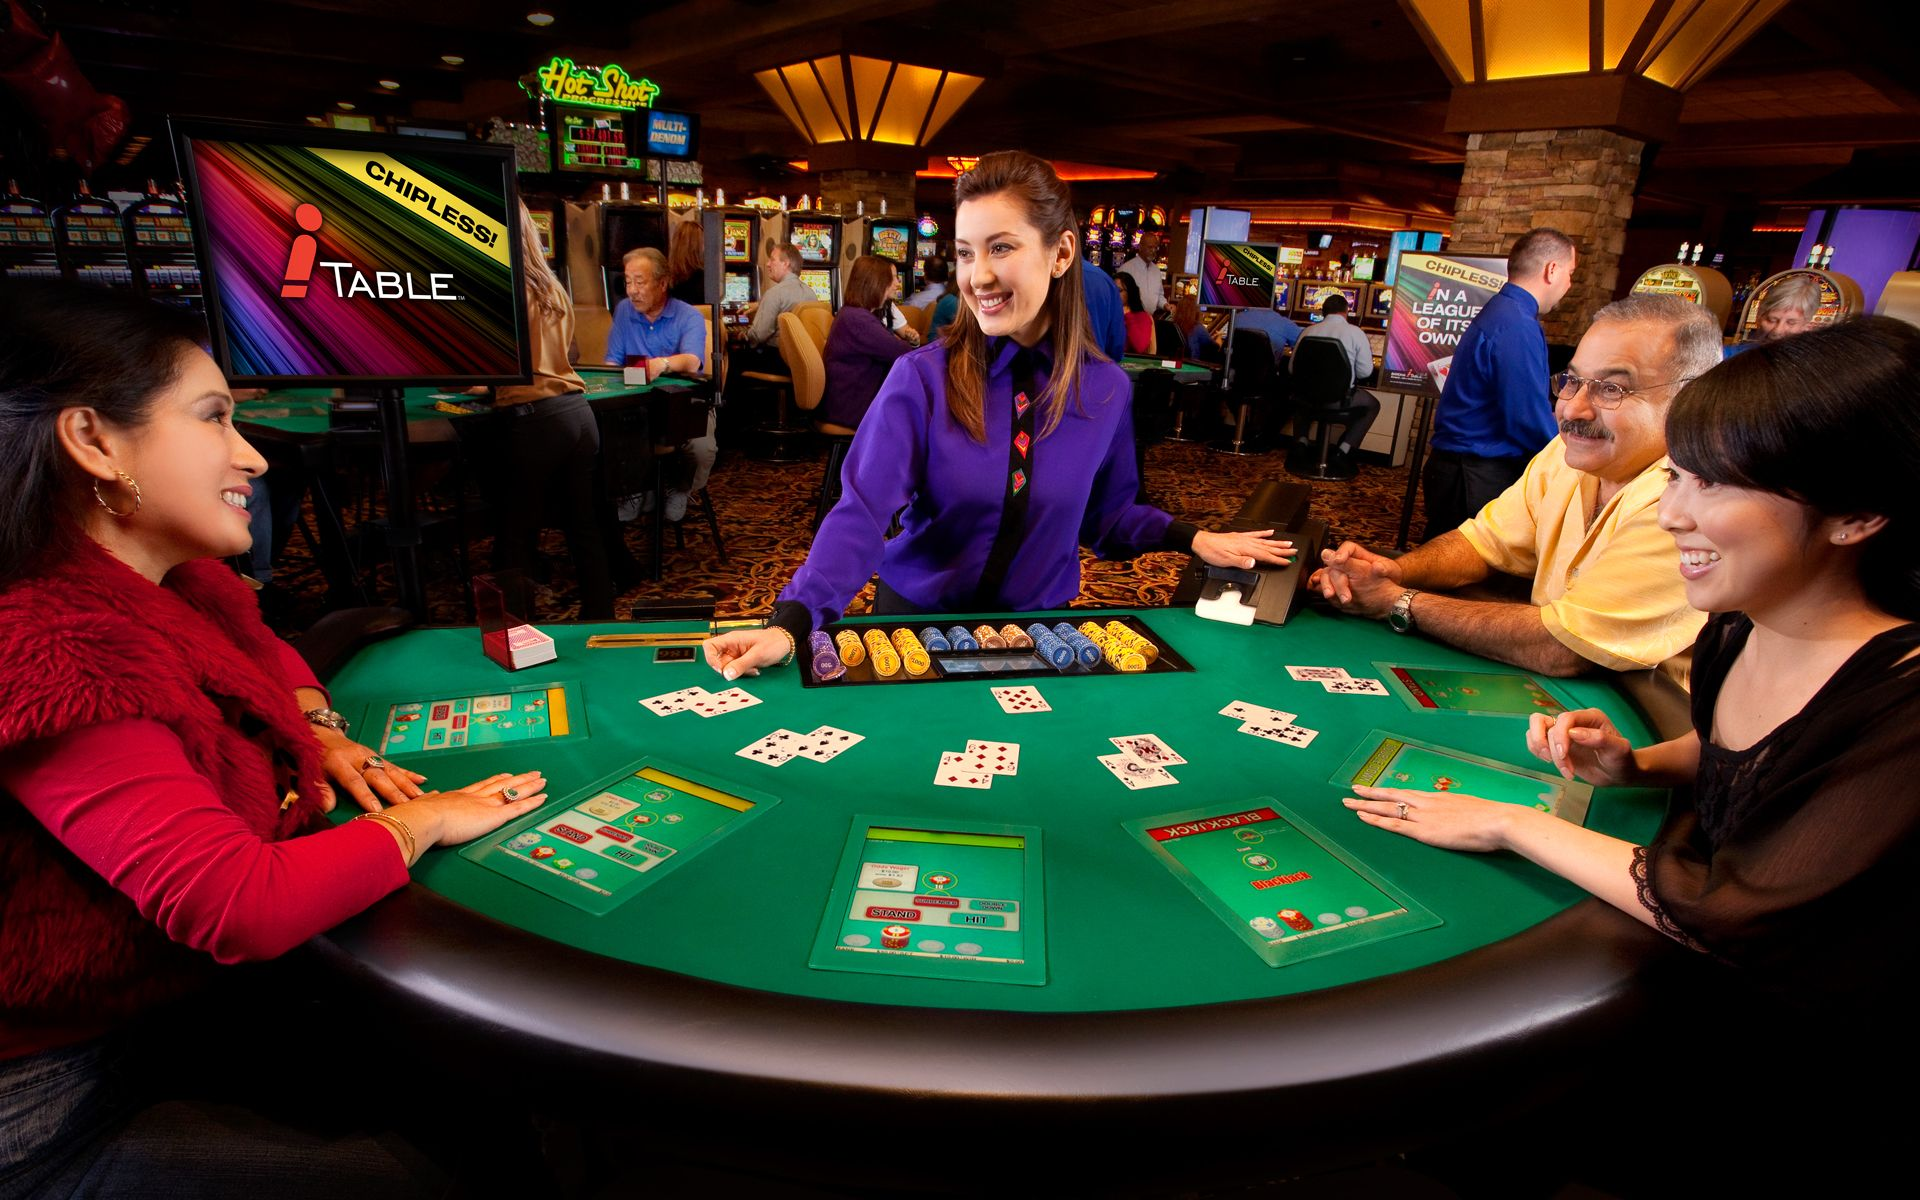 European casino games to play online 12